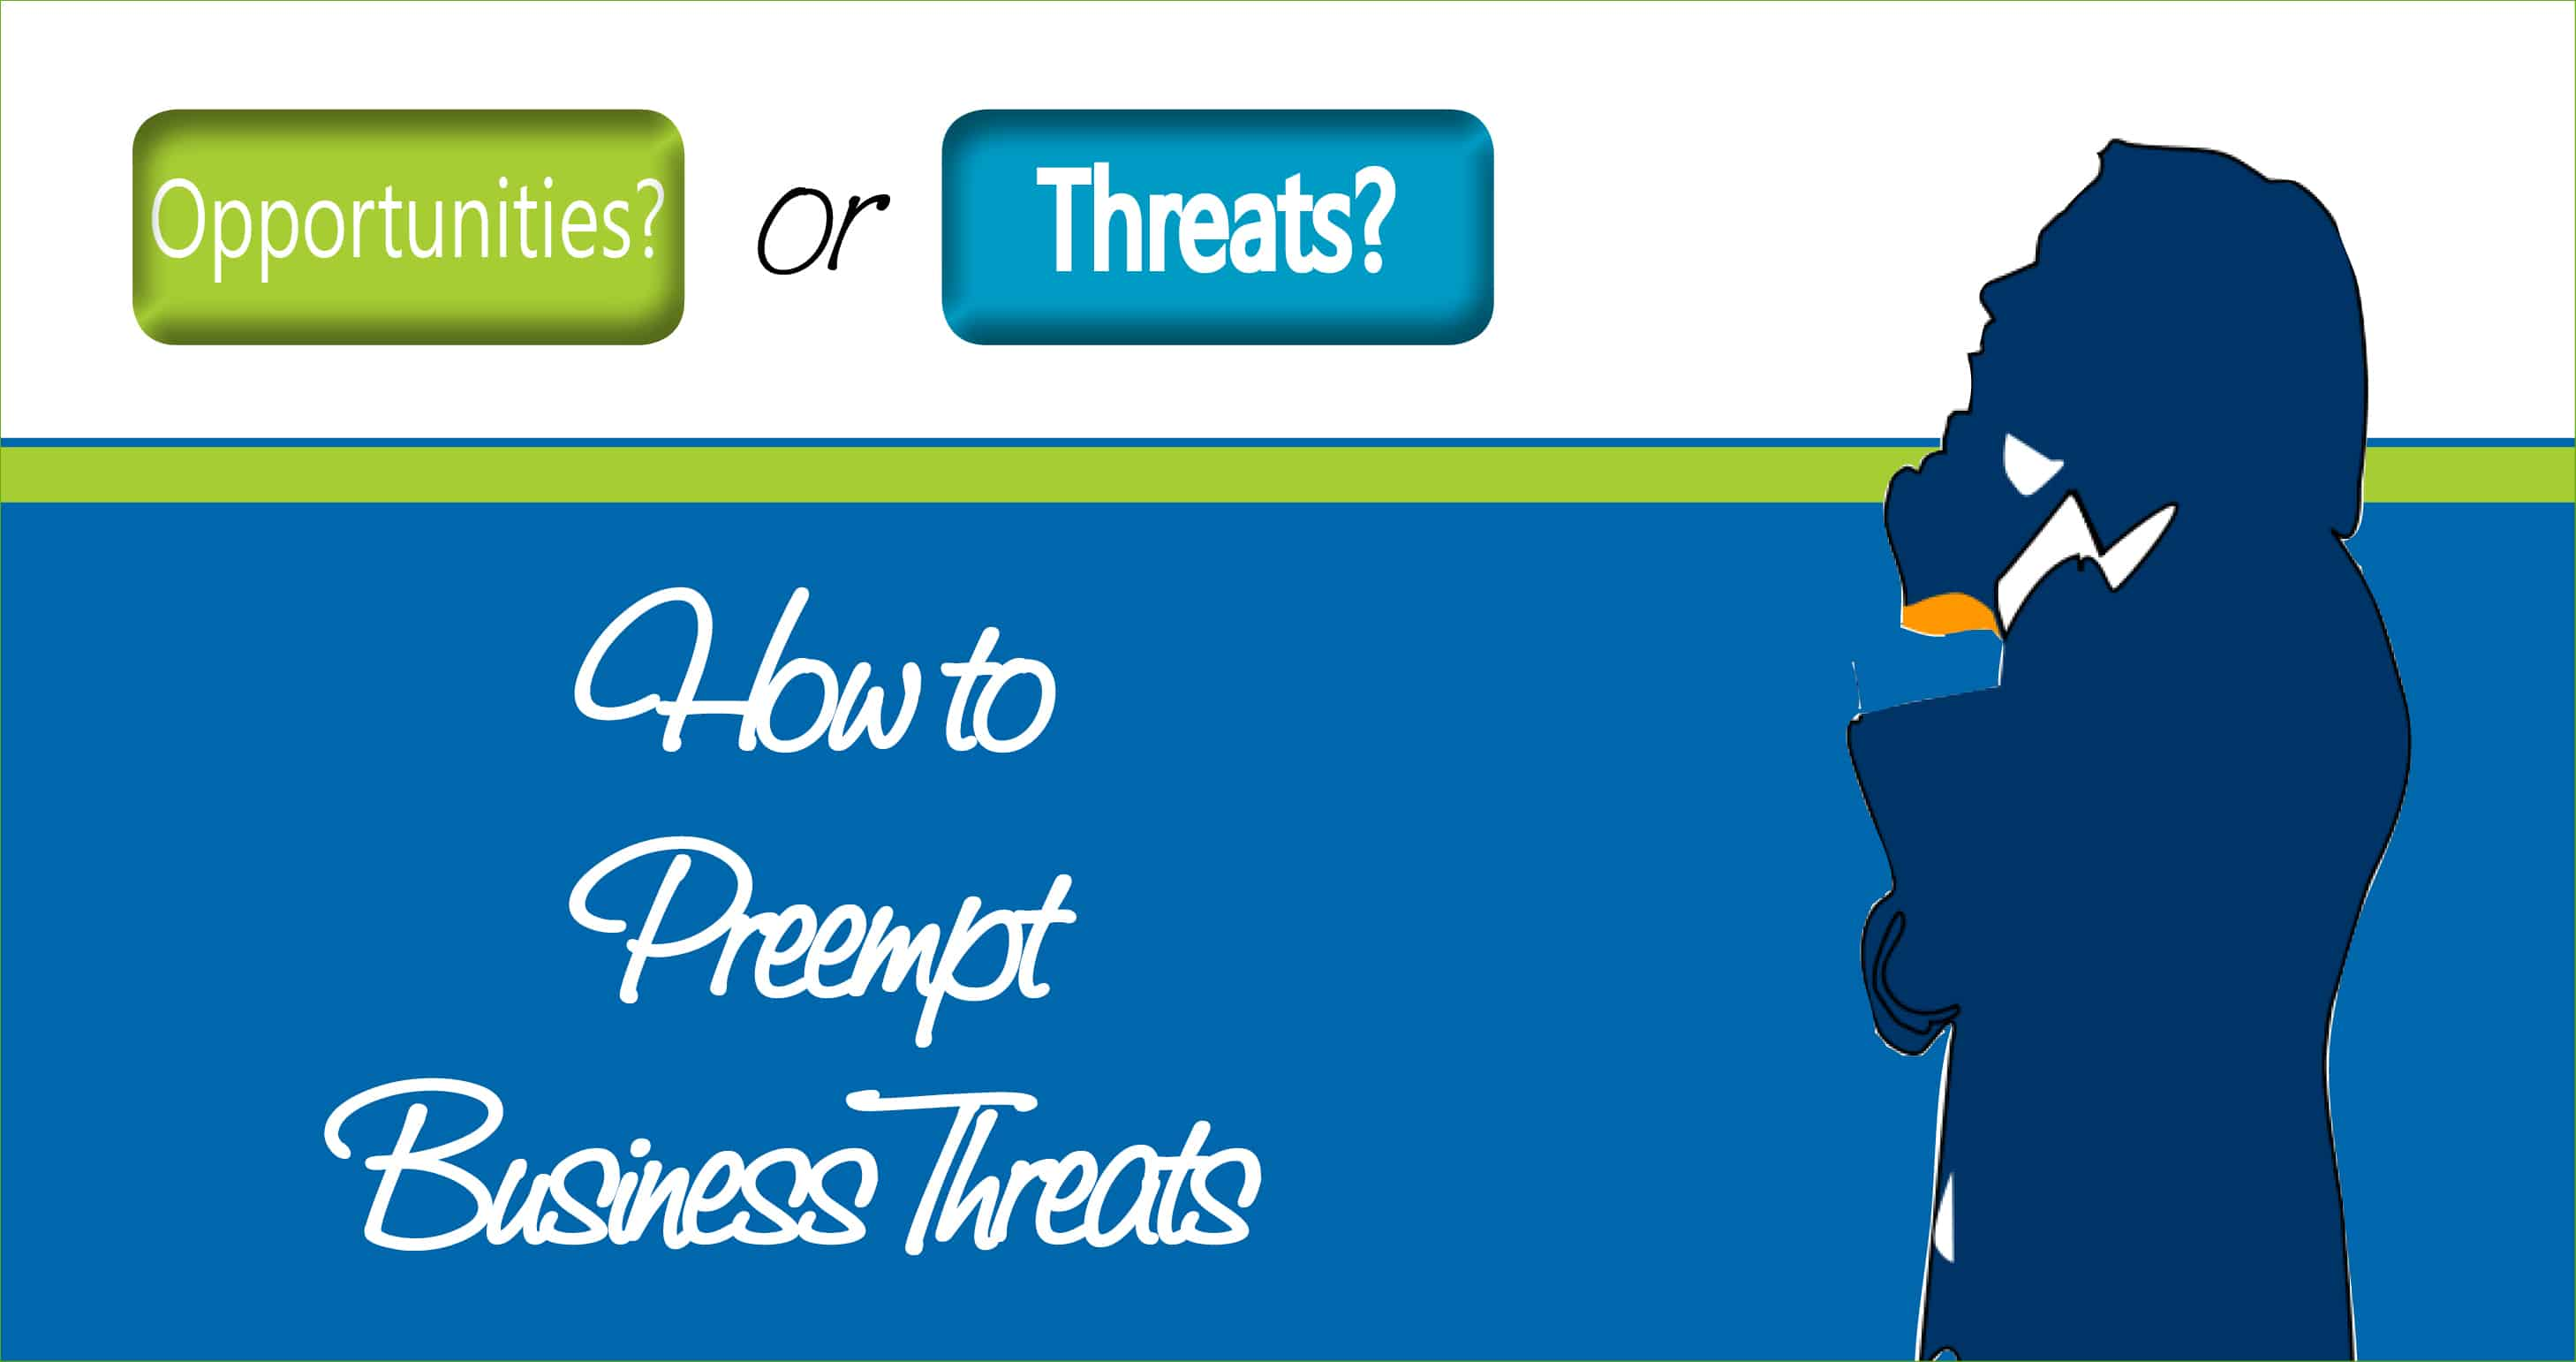 How to Preempt Business Threats